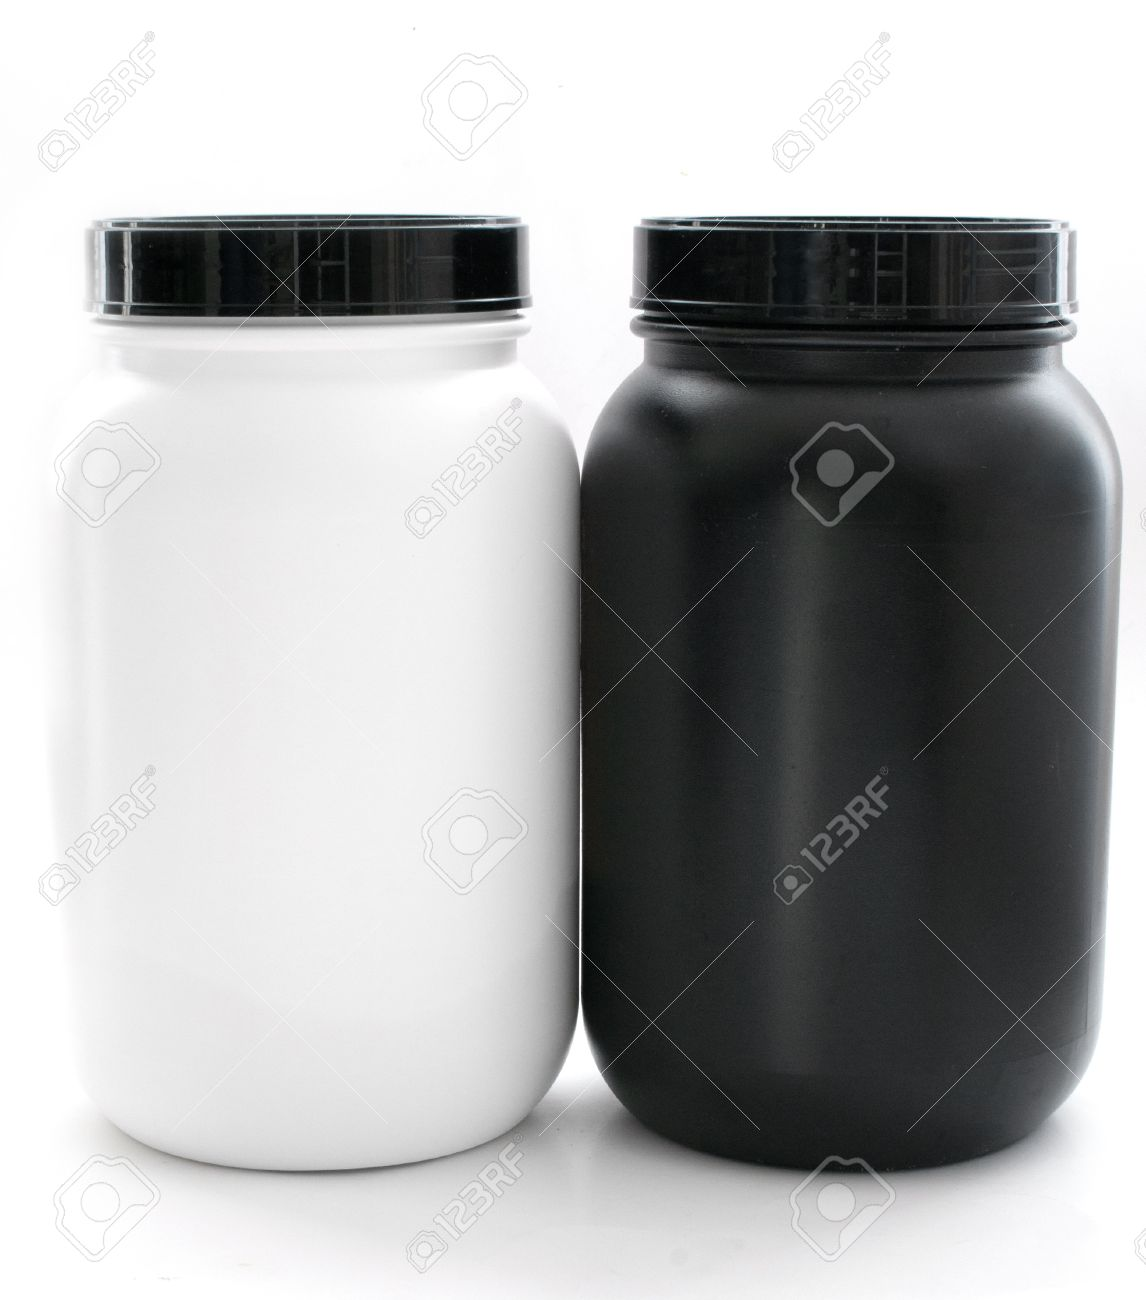 Jars for sport supplements black and white isolated - 15098653